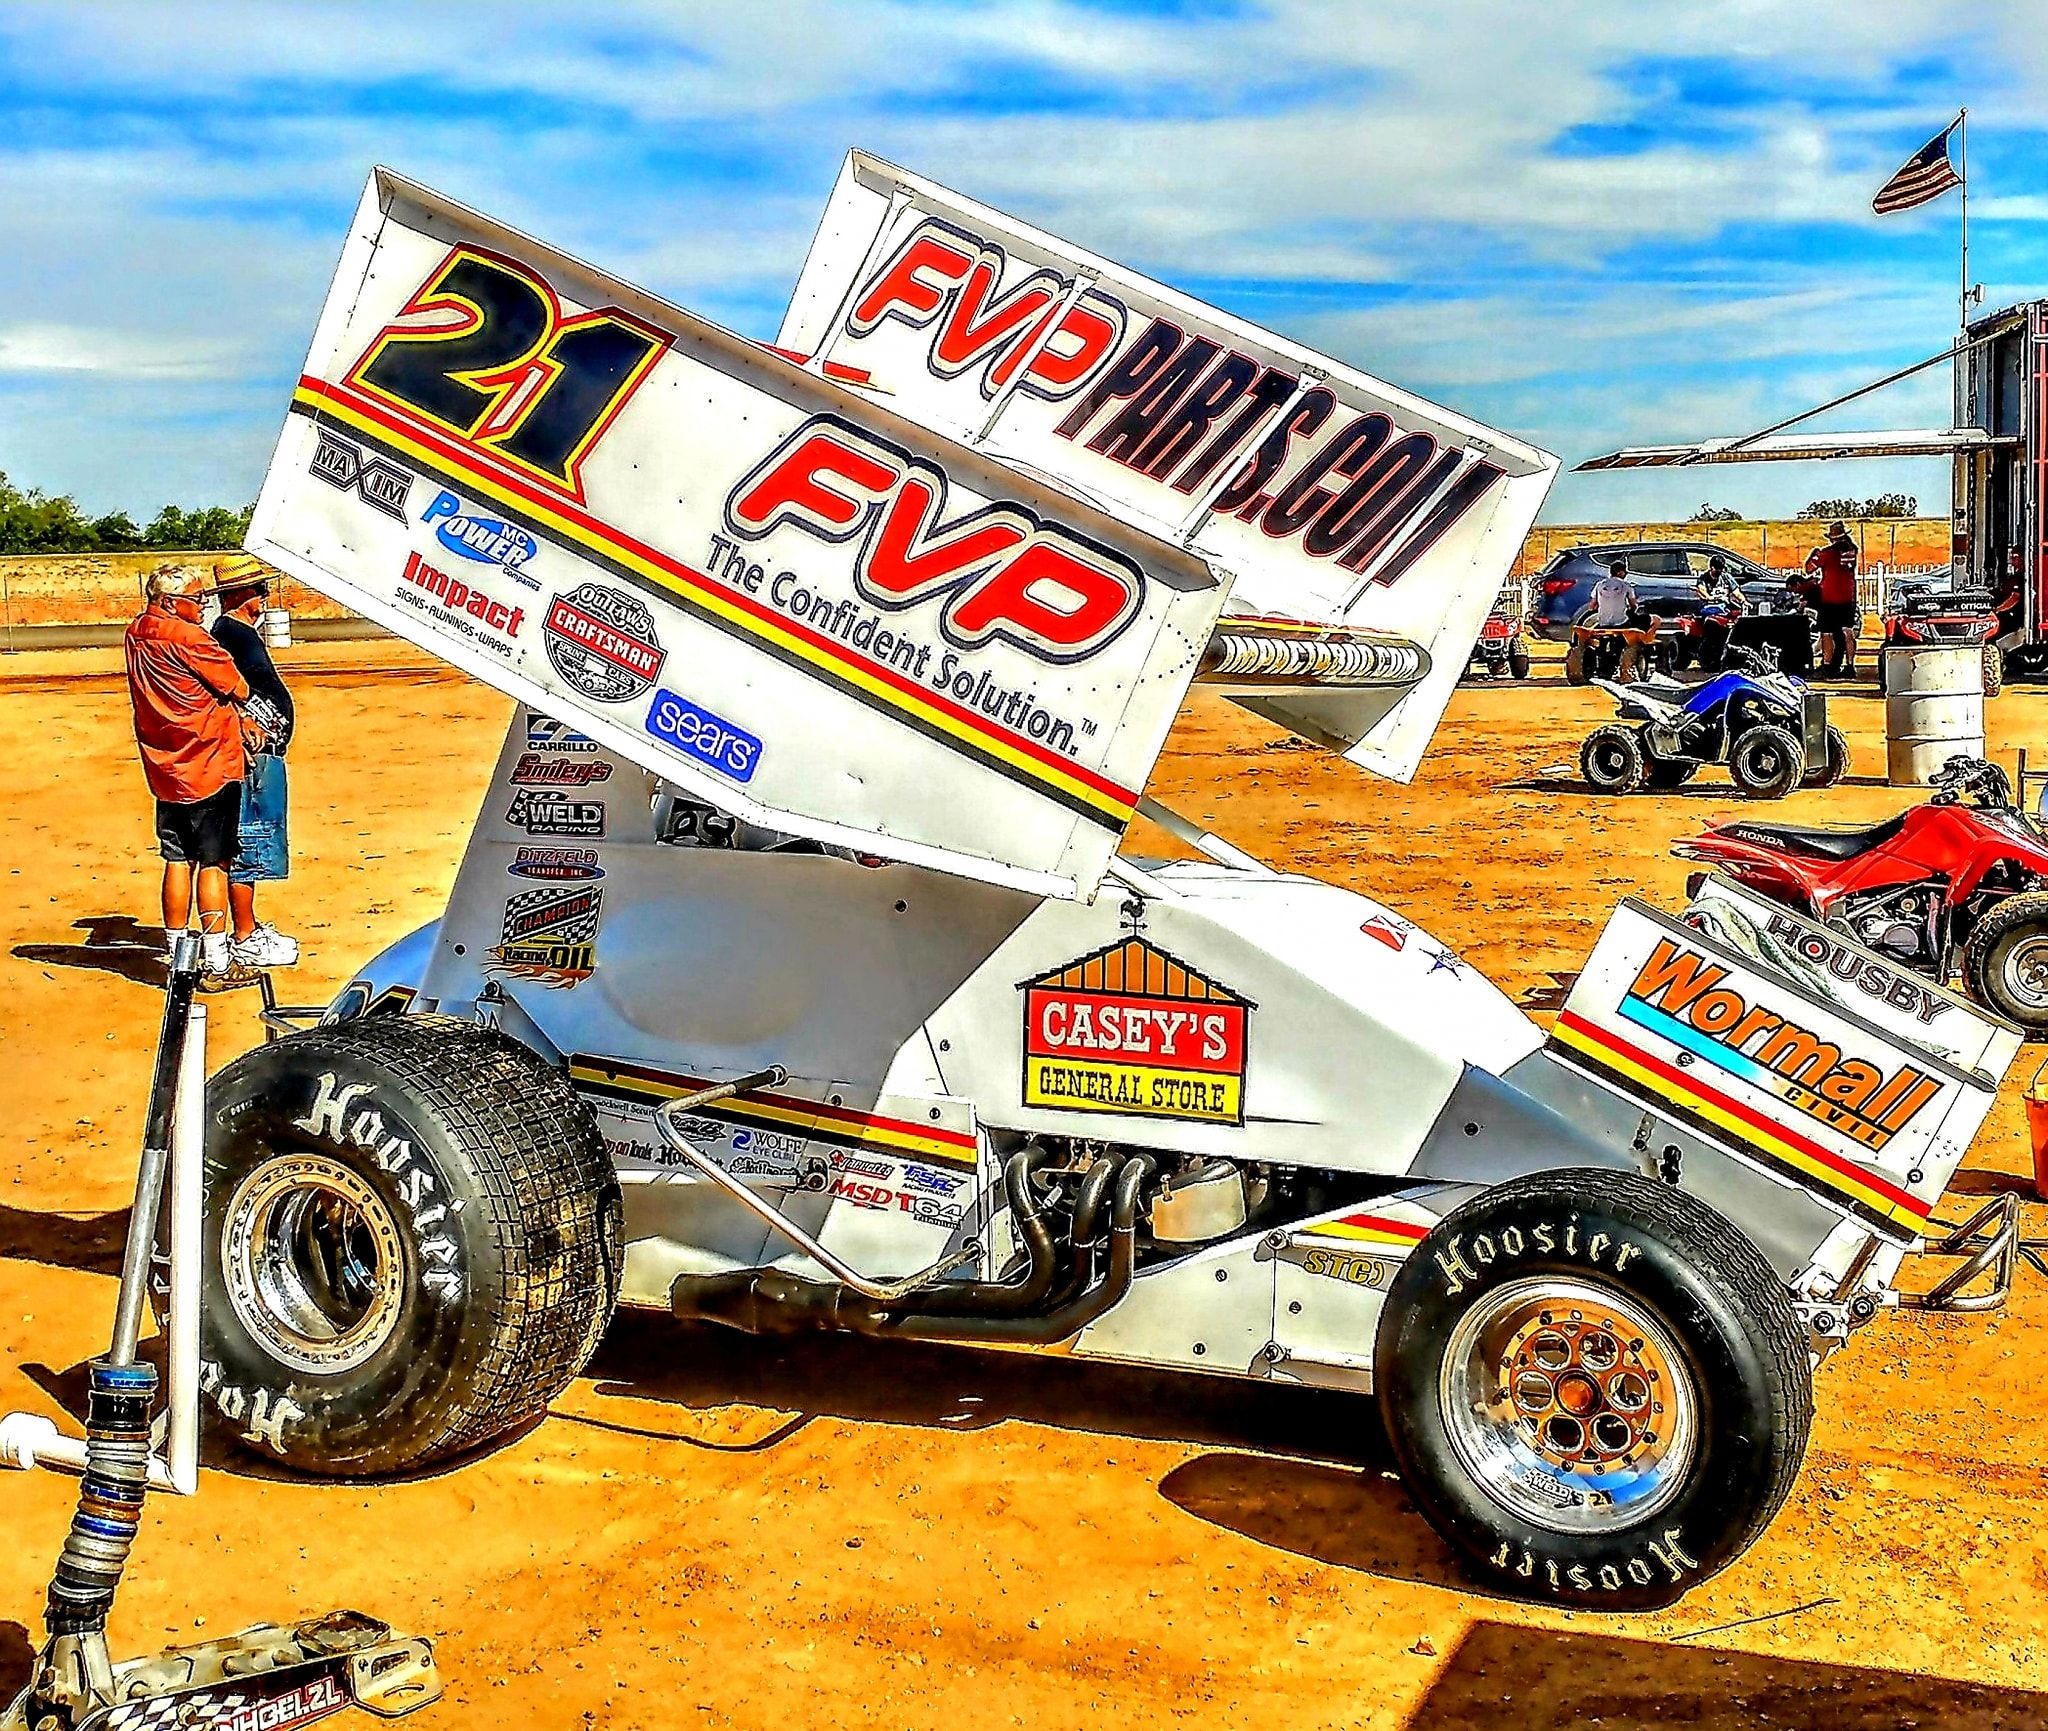 Nascar Wallpapers Tumblr: Sprint Car Racing Image By JaysFan On Sprint Cars